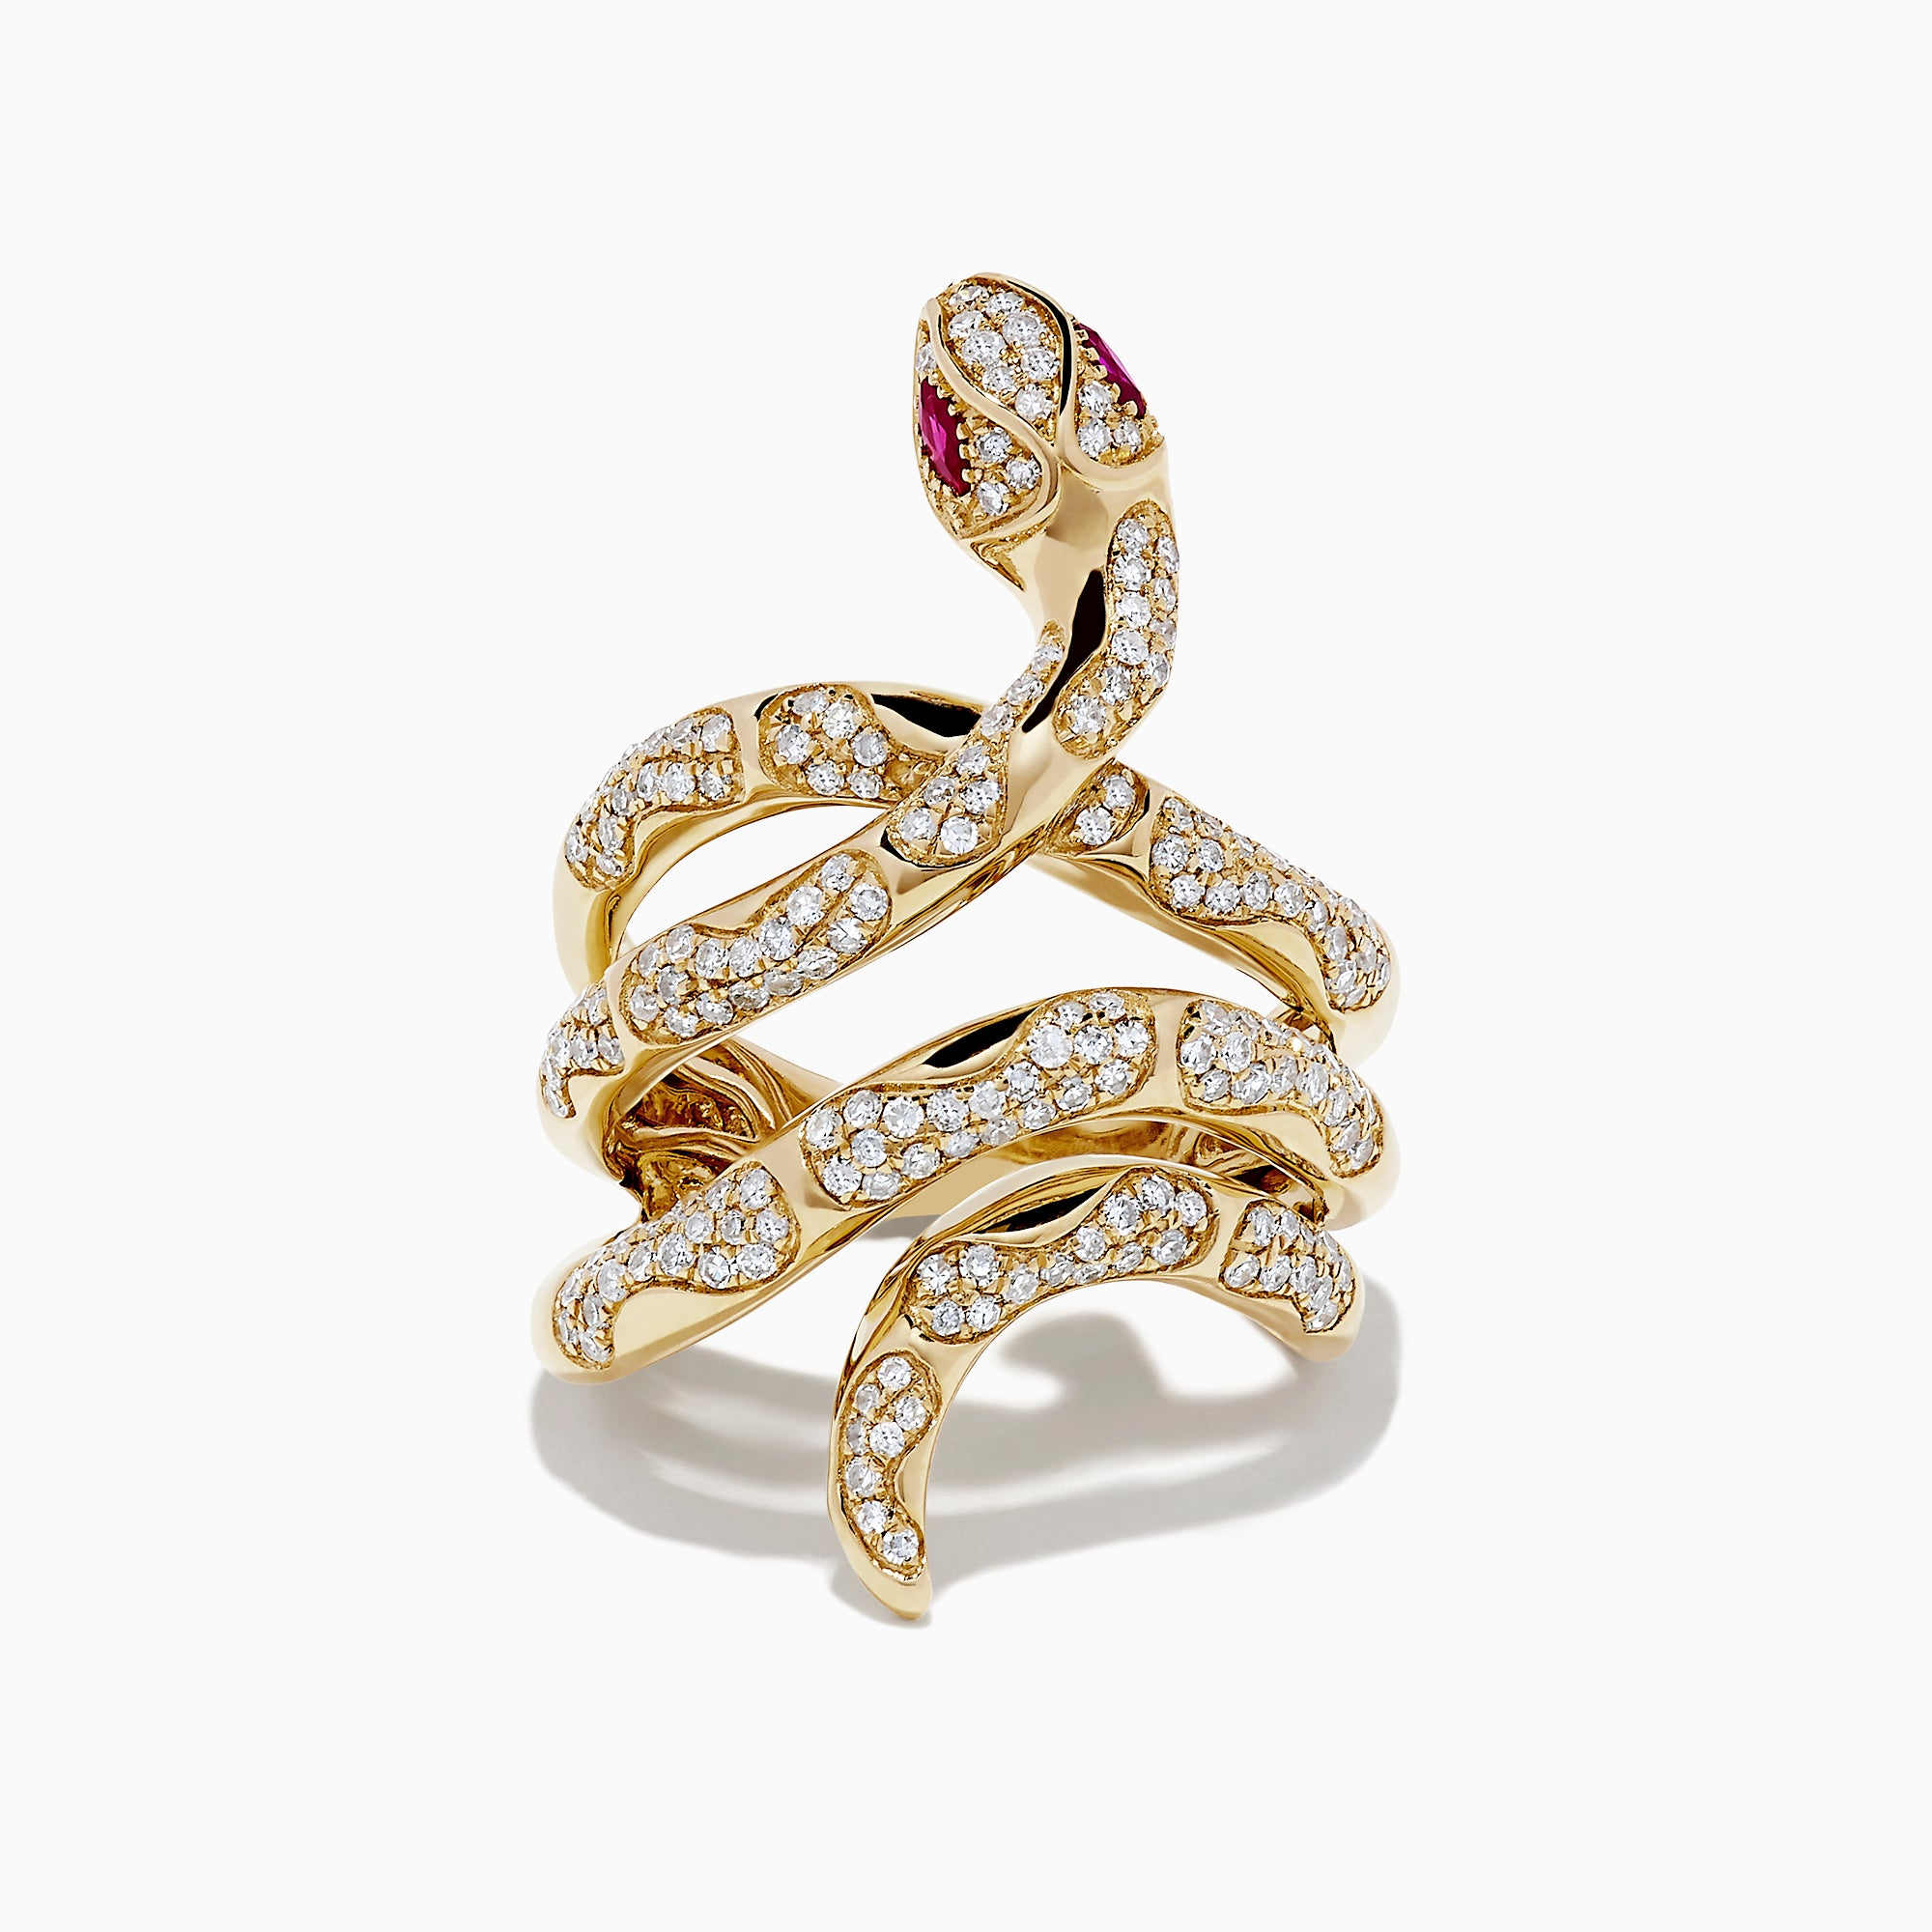 Effy Safari 14K Yellow Gold Diamond and Ruby Snake Ring, 0.89 TCW